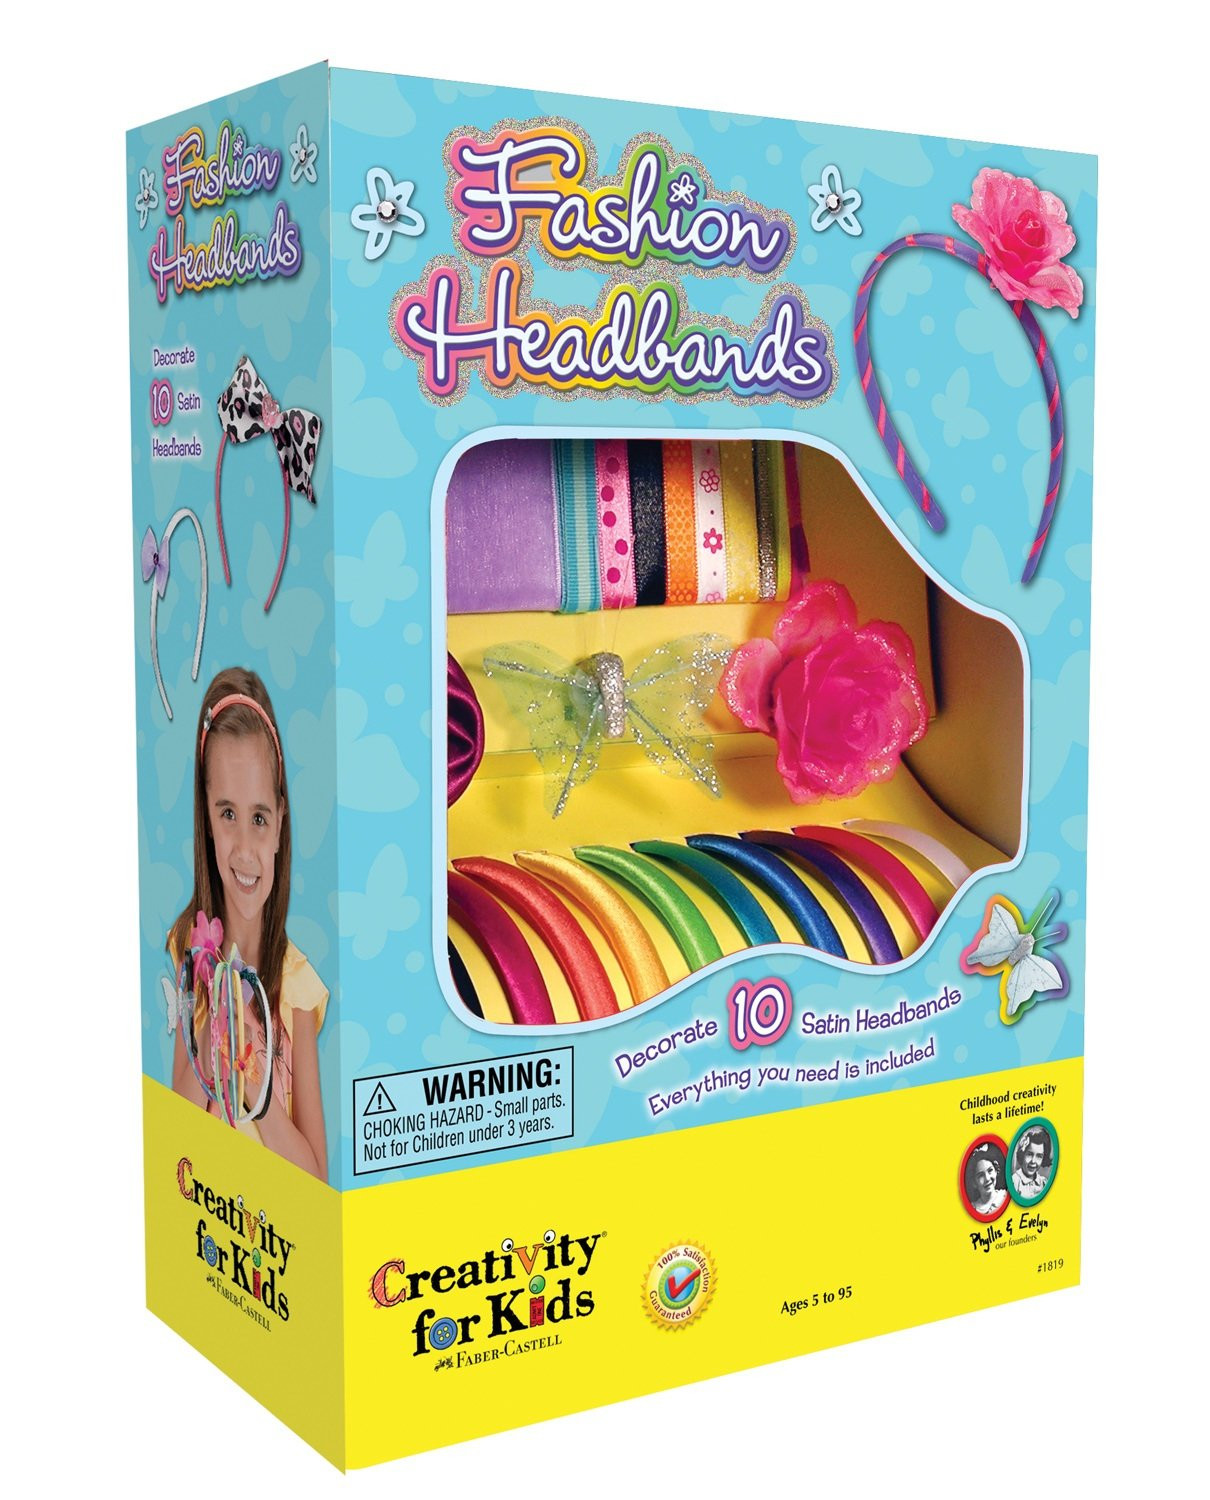 Toys For Girls 6 8 : Best gifts for year old girls in itsy bitsy fun